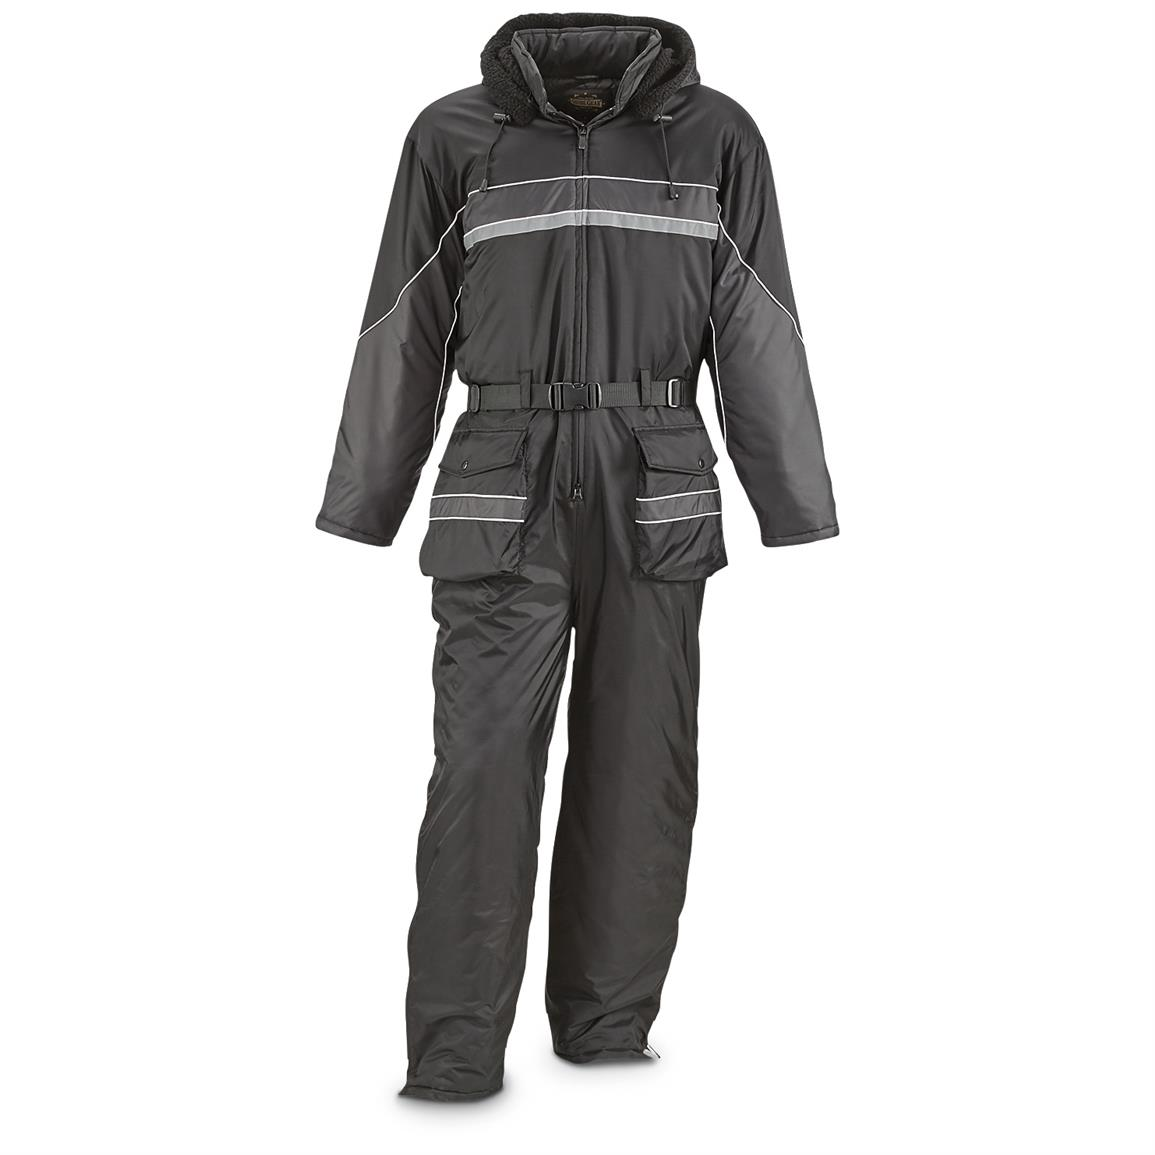 Guide Gear Men's One-Piece Snow Suit, Black / Gray